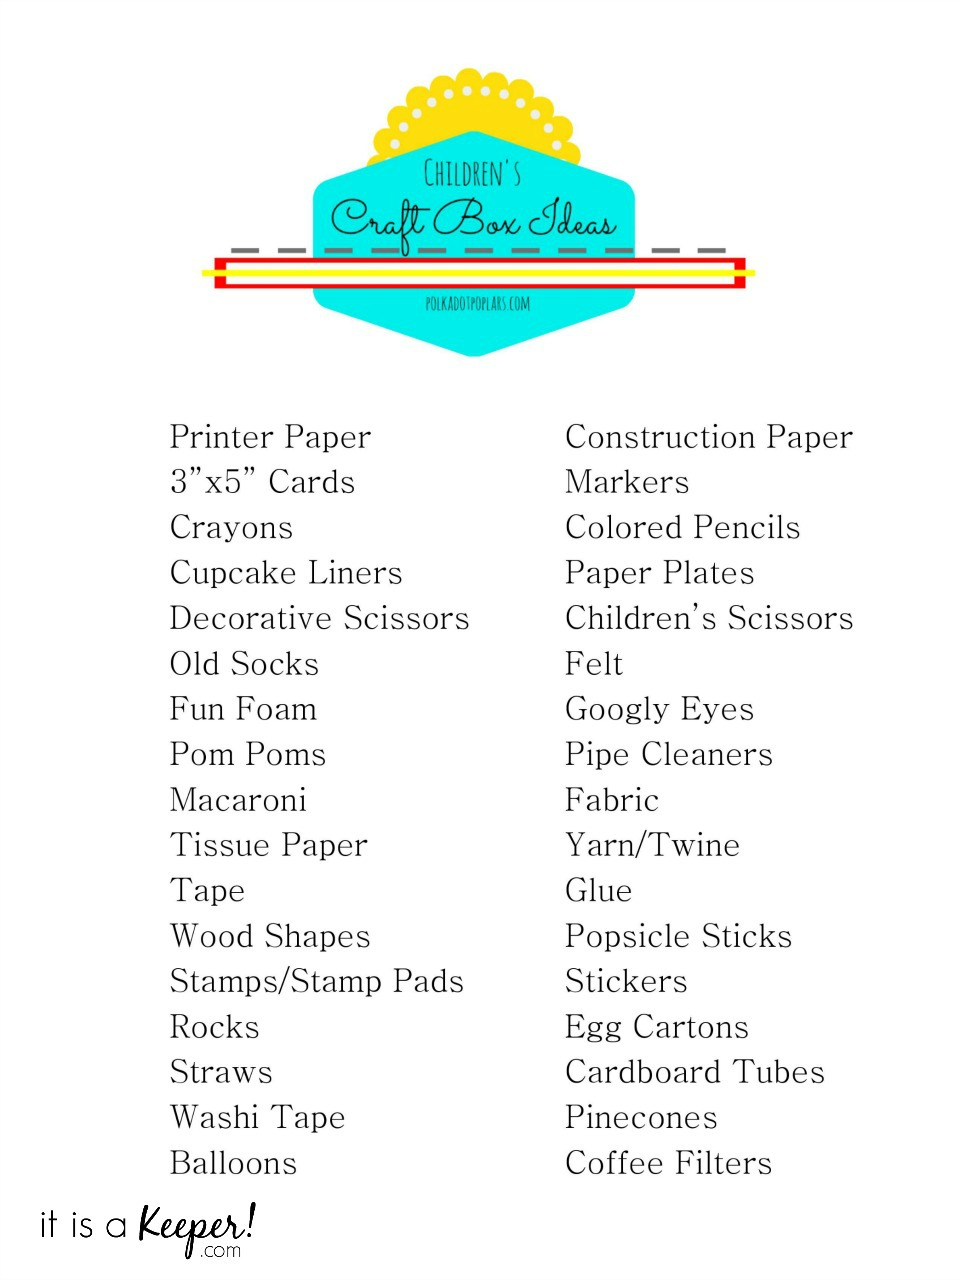 Need a boredom buster? Keep the kids busy this summer with these Children's Craft Box Ideas